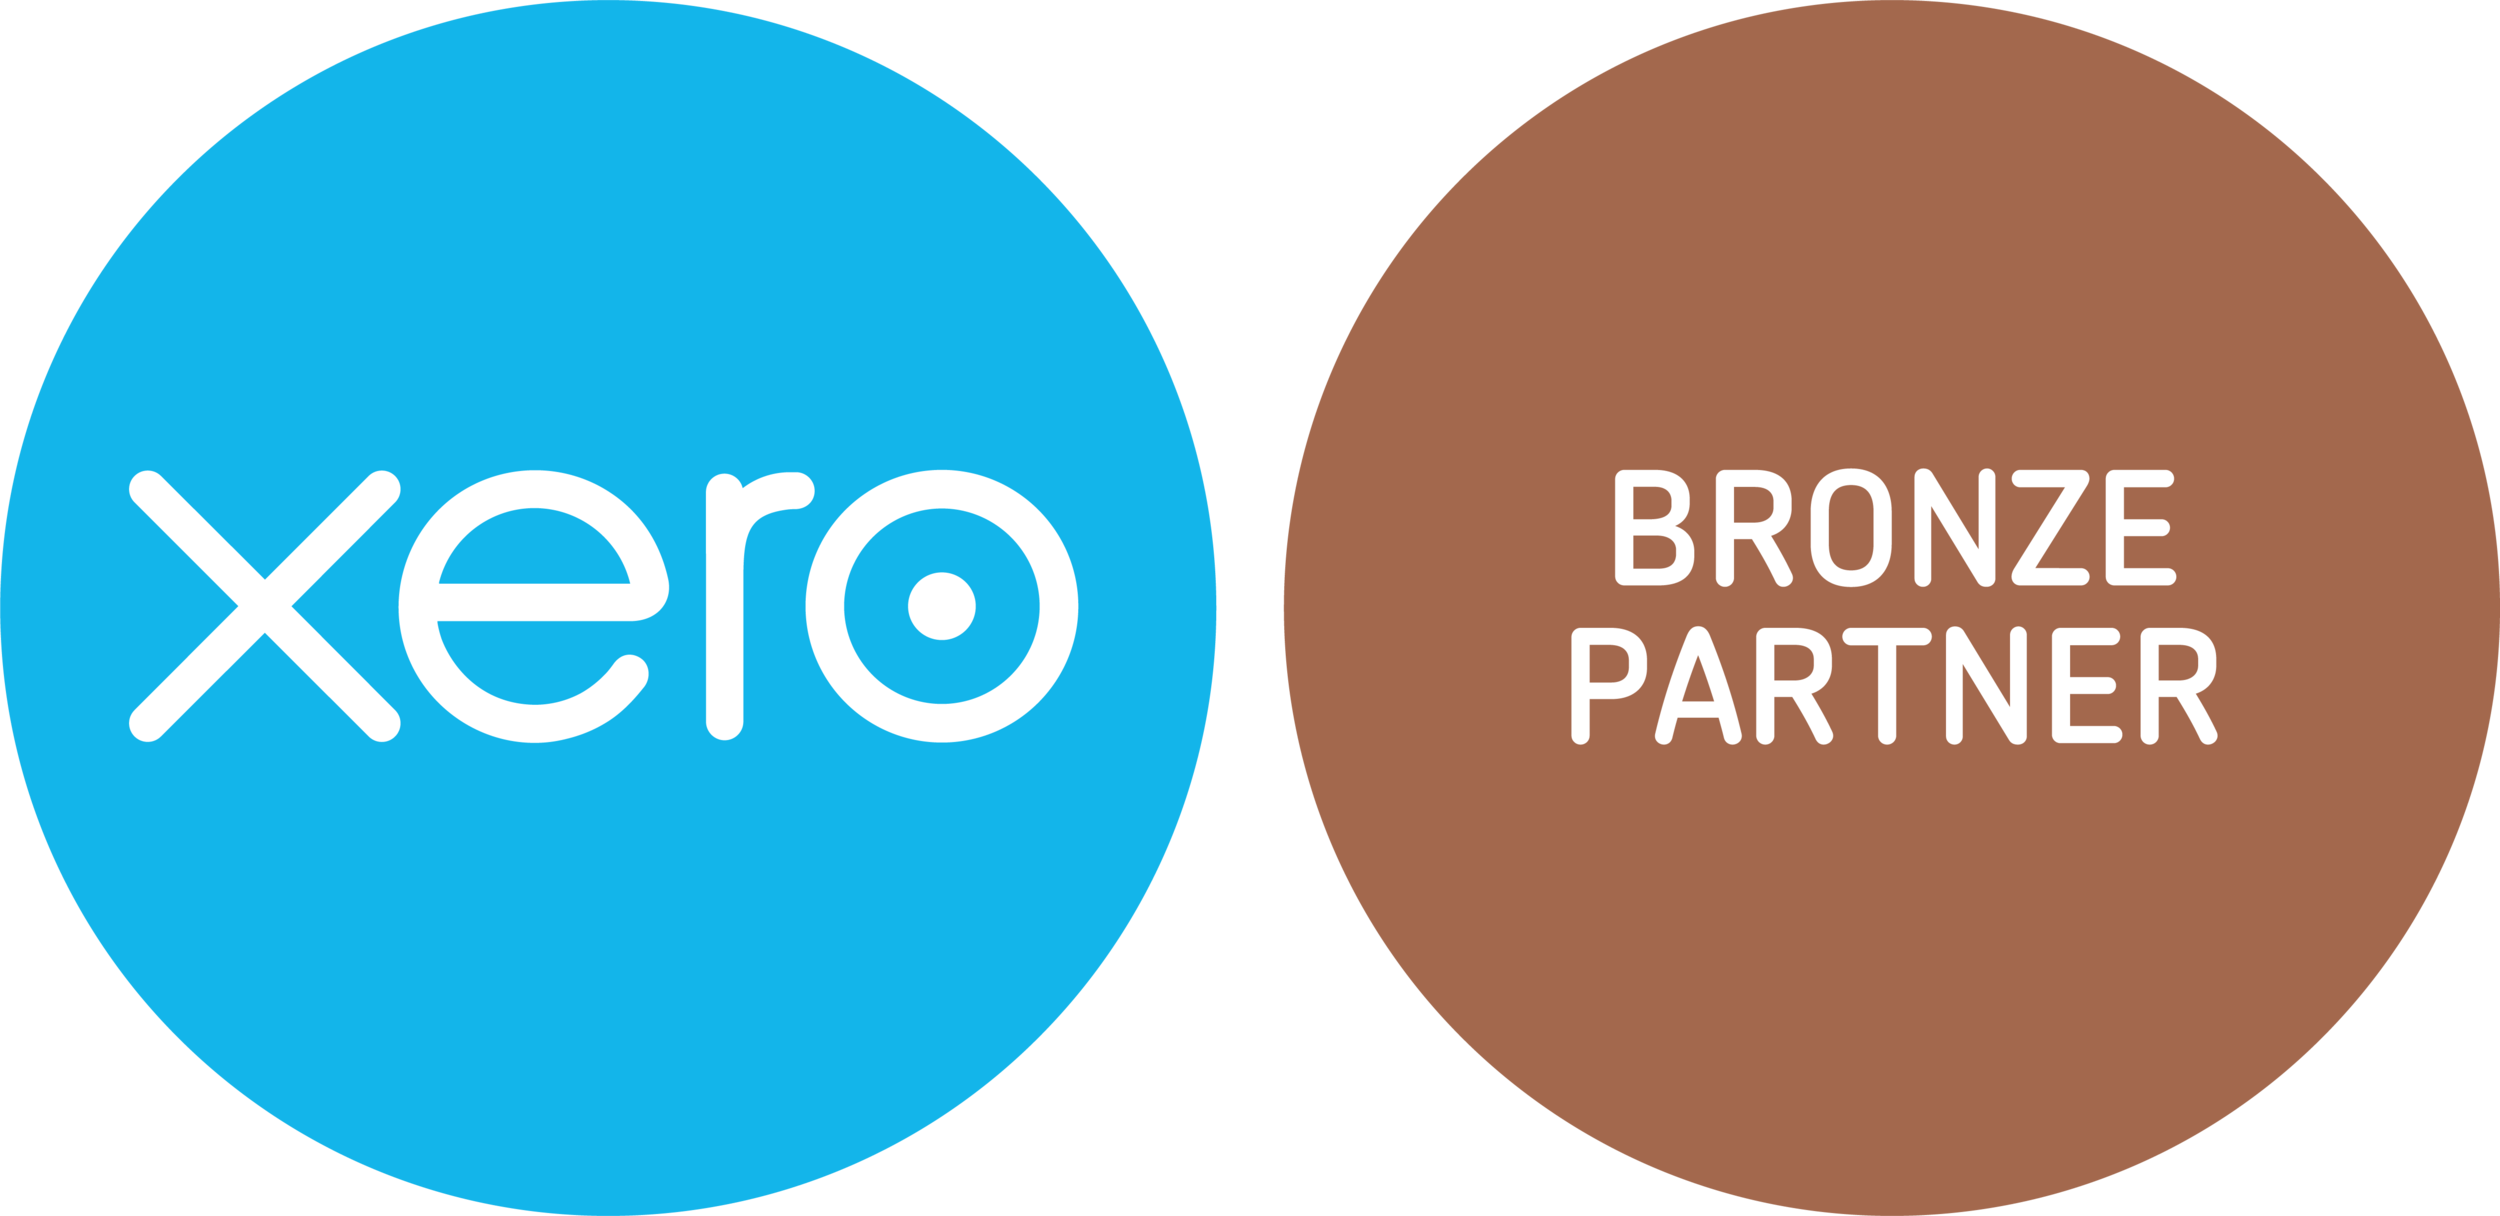 xero-bronze-partner-logo-RGB copy.png